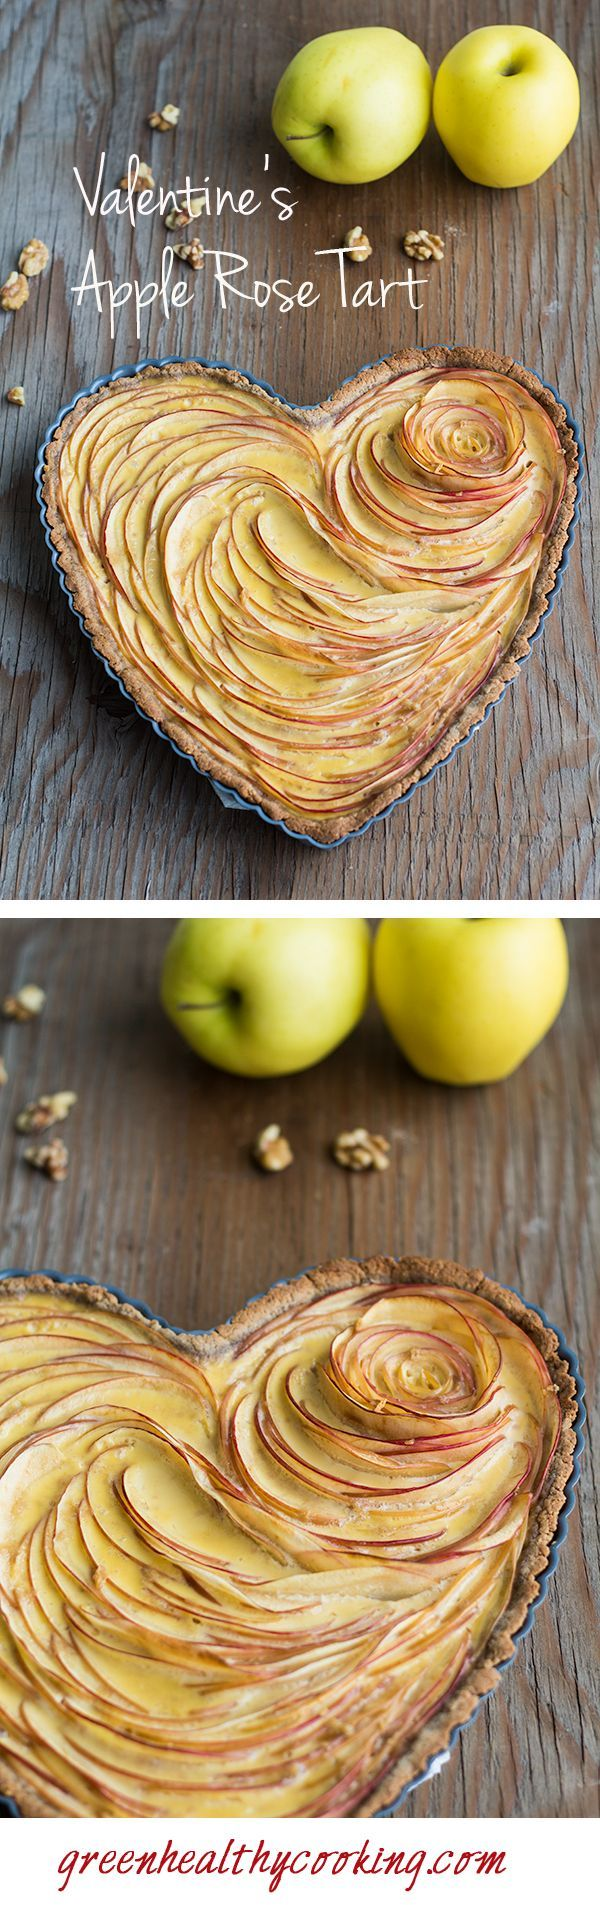 This Valentines Apple Rose Tart recipe teaches you how to prepare a beautiful and healthy nut flour apple pie with all the love for someone very special!